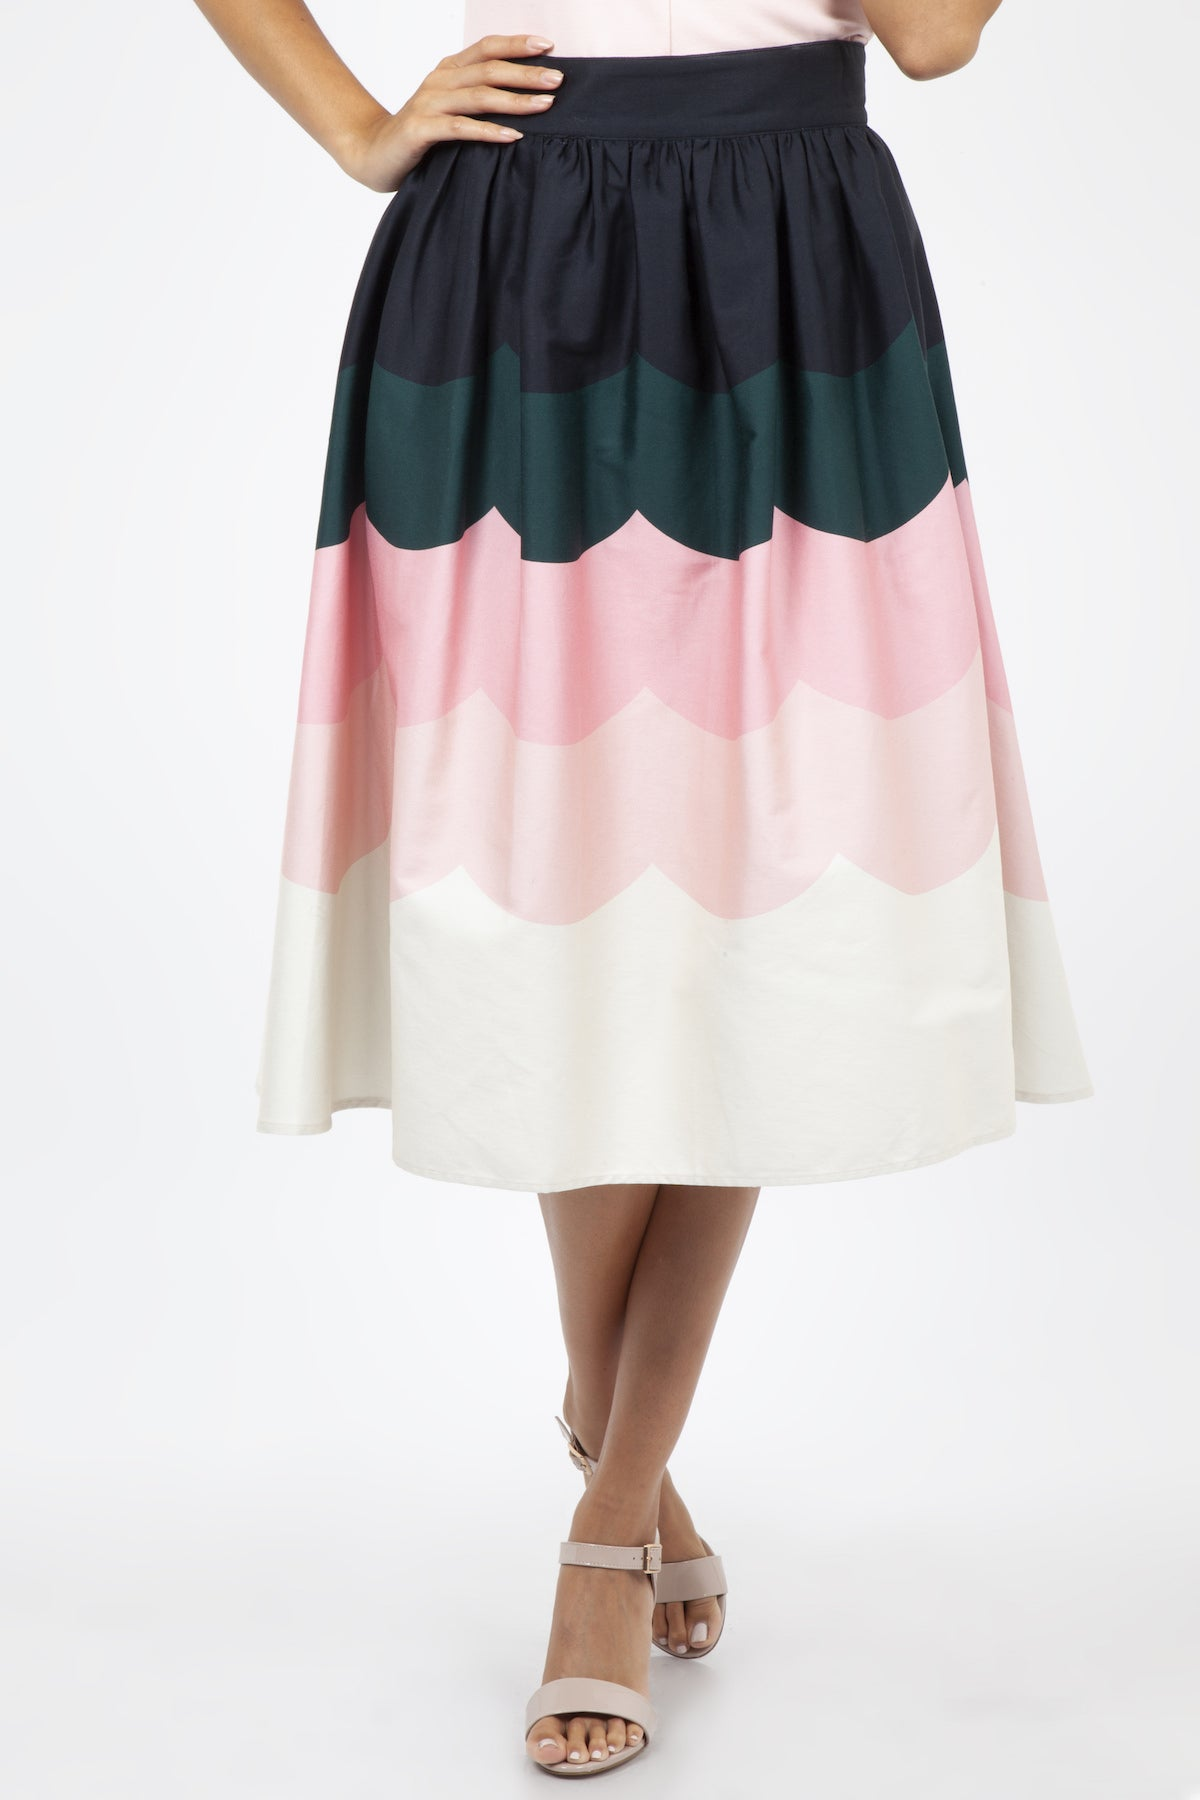 Sofia Scalloped Full Skirt by Voodoo Vixen